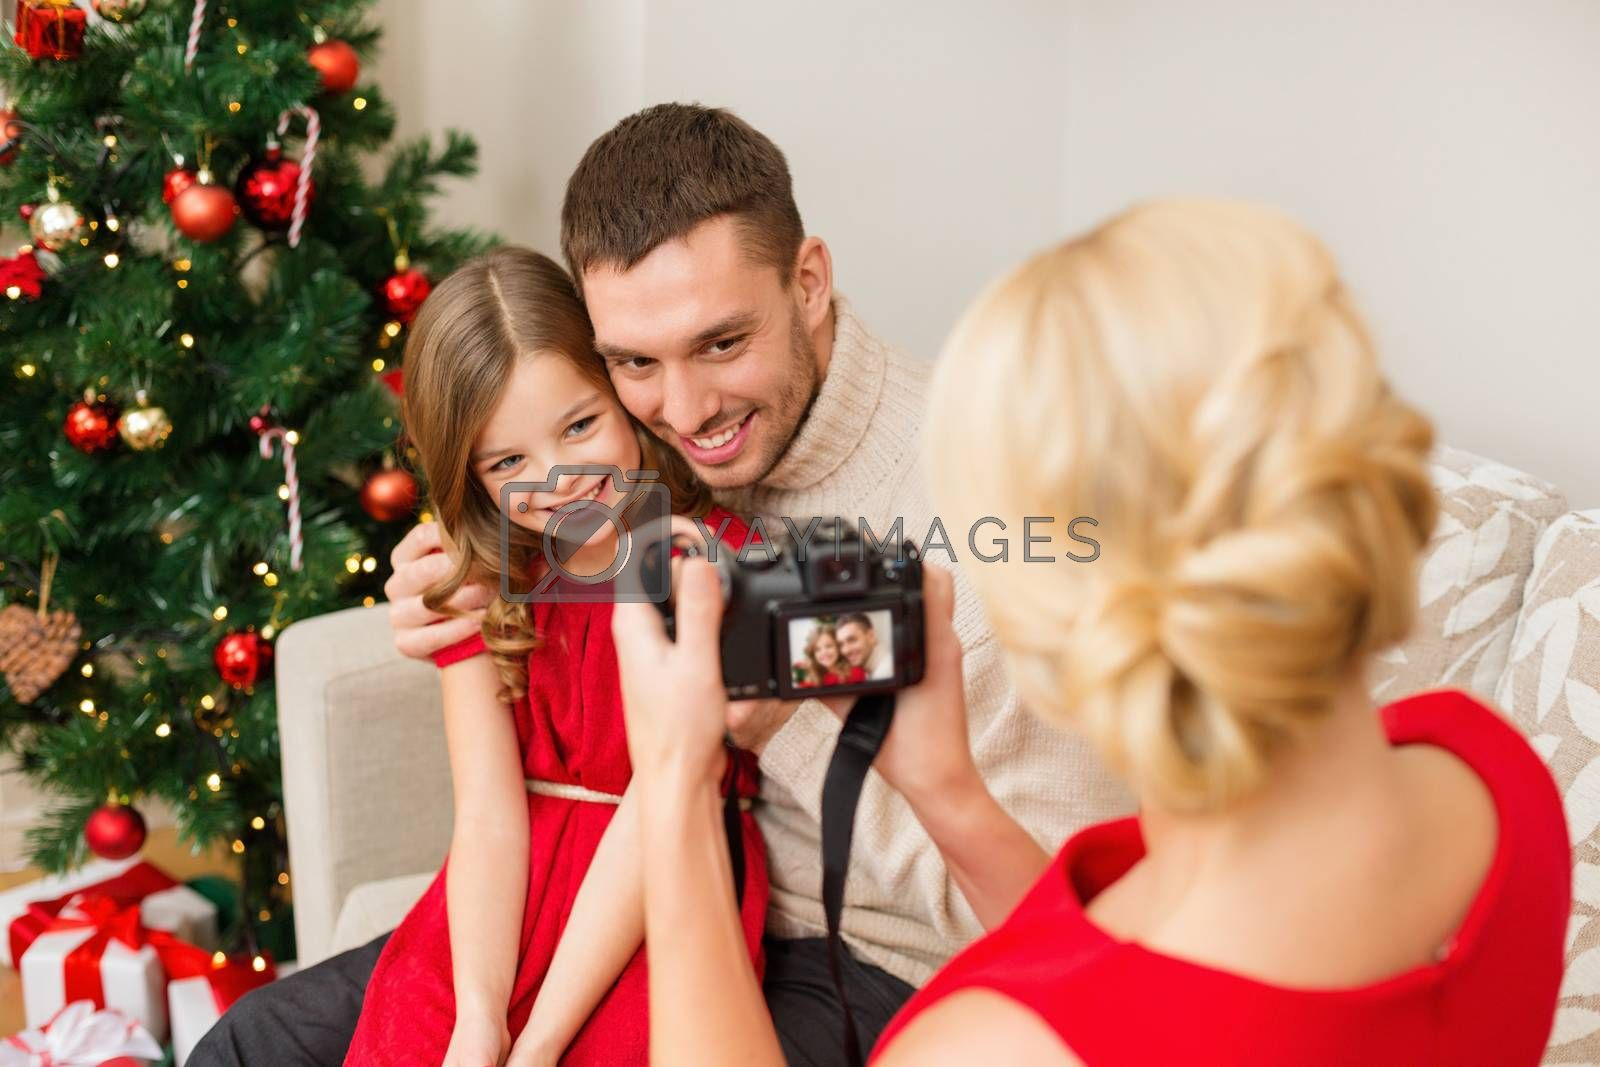 mother taking picture of father and daughter by dolgachov